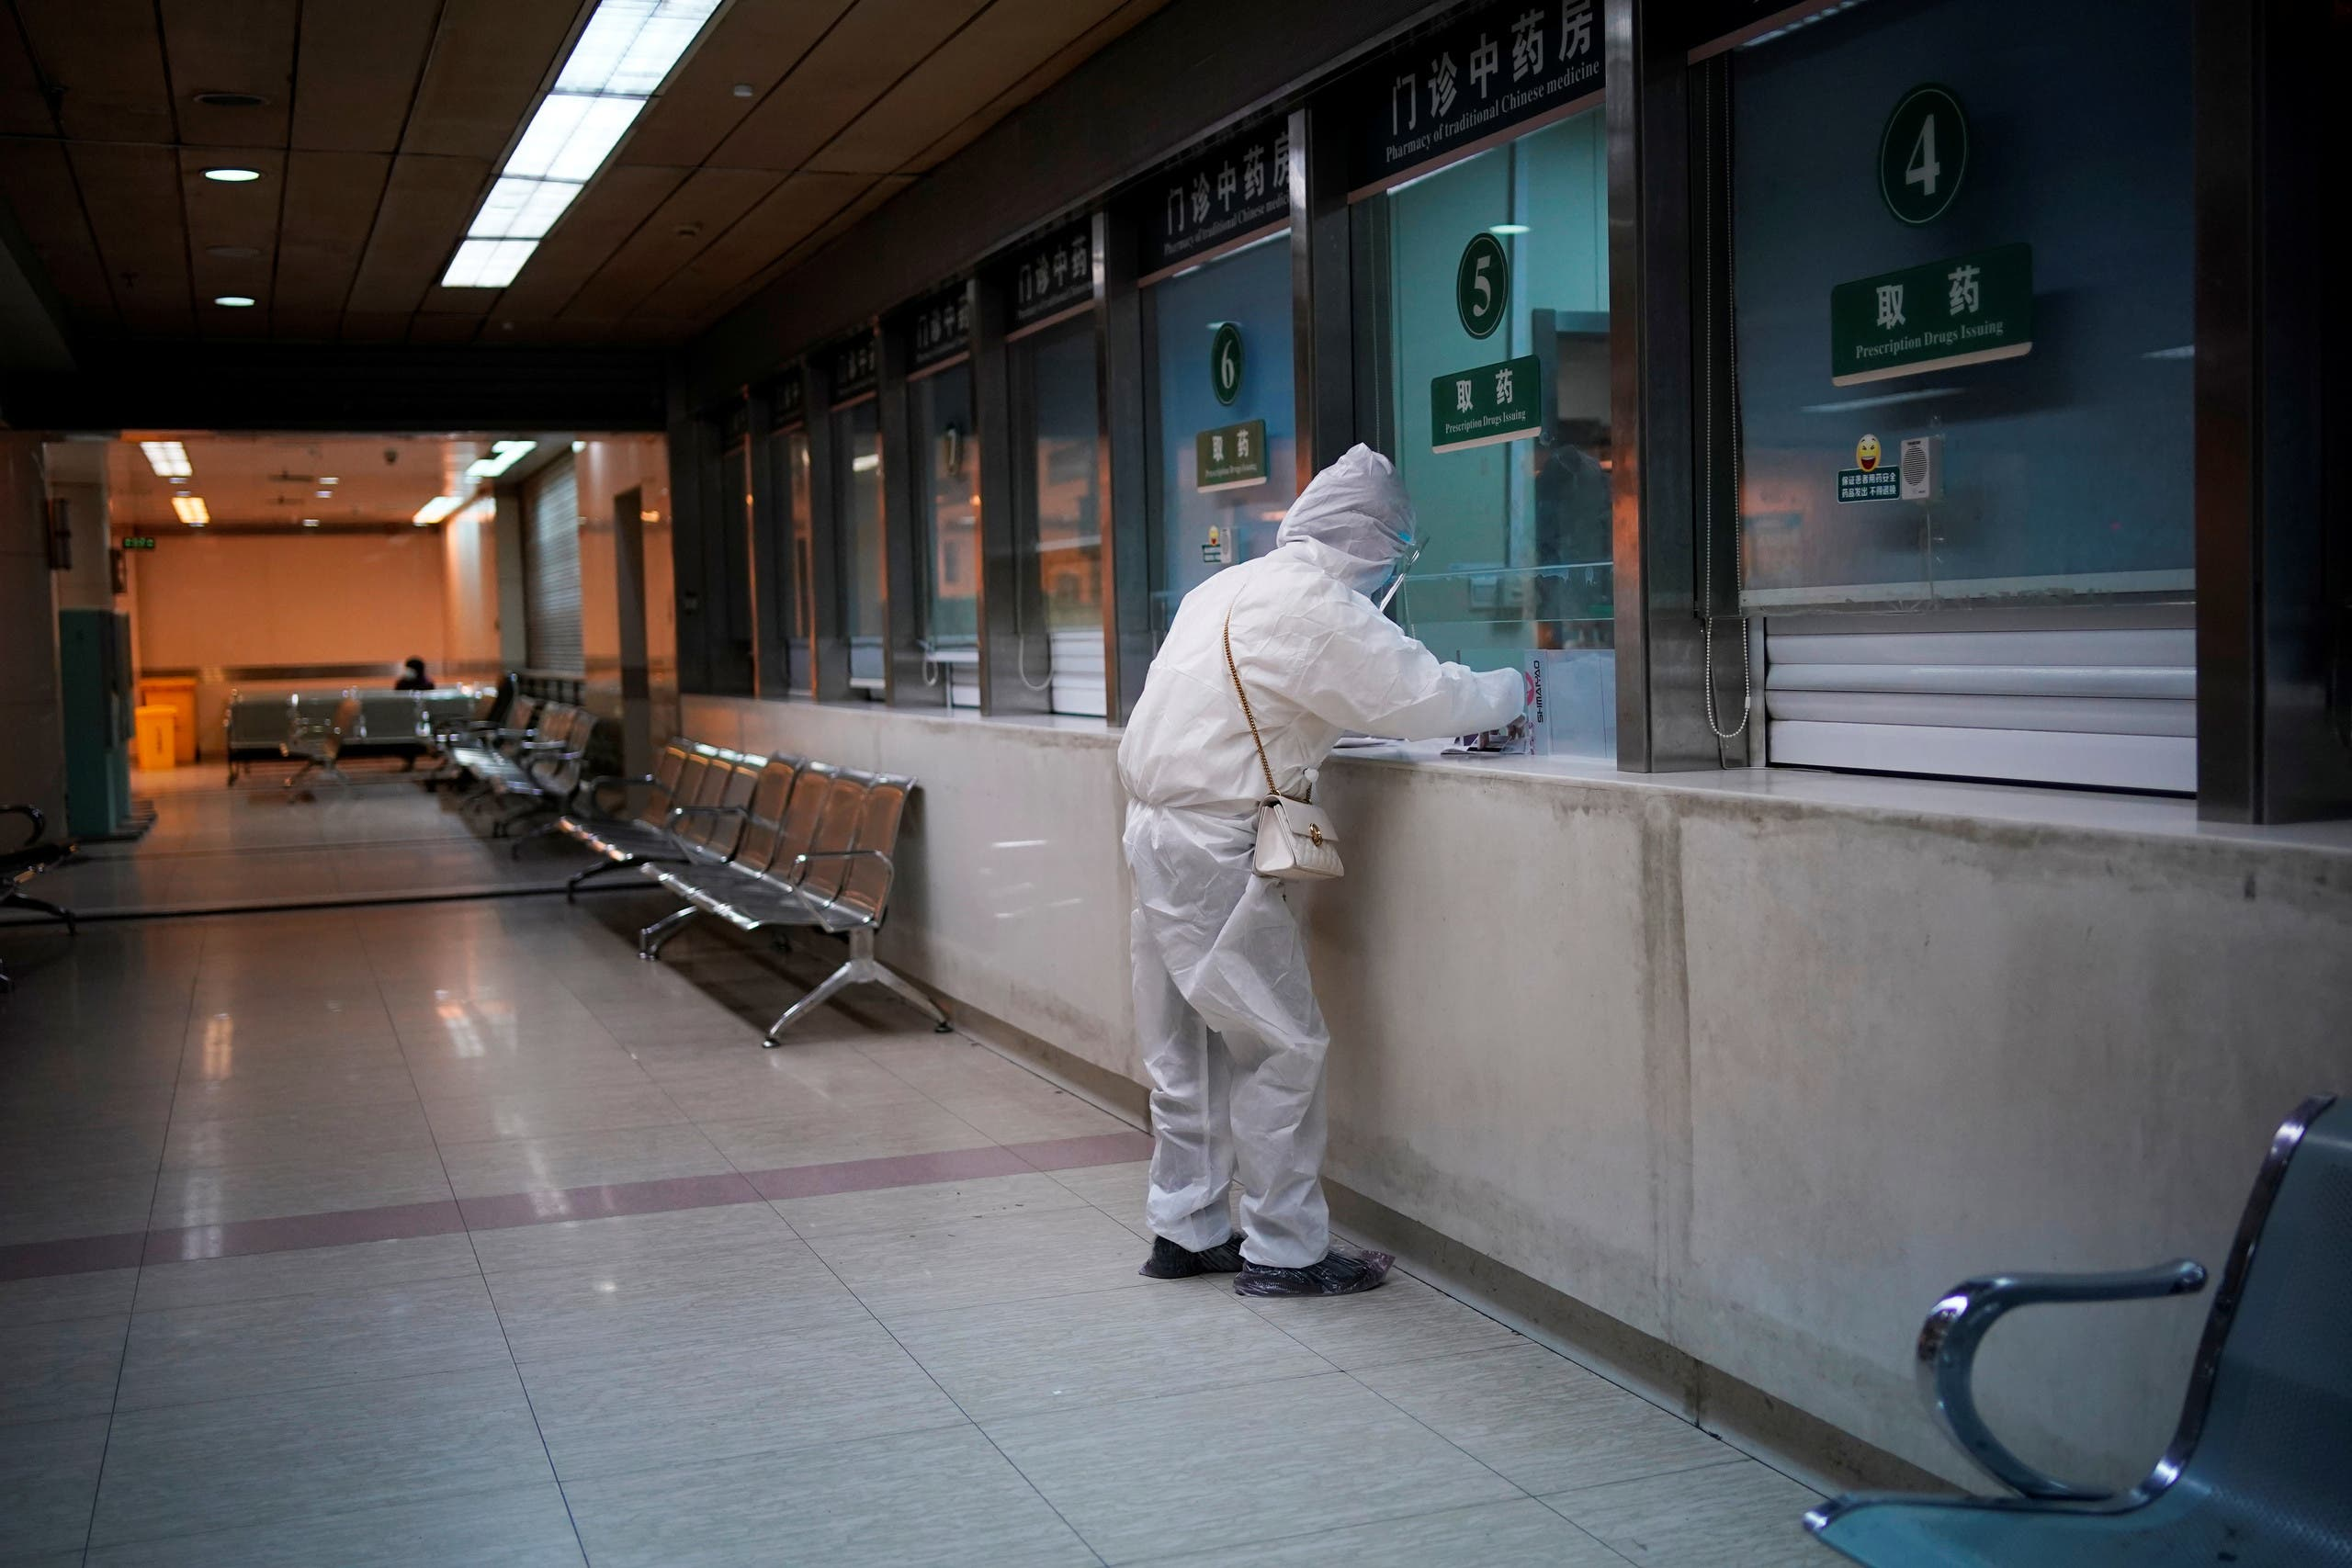 A woman wearing protective suit is seen at a hospital after the lockdown was lifted in Wuhan, capital of Hubei province and China's epicentre of the novel coronavirus disease (COVID-19) outbreak, April 13, 2020. (Reuters)